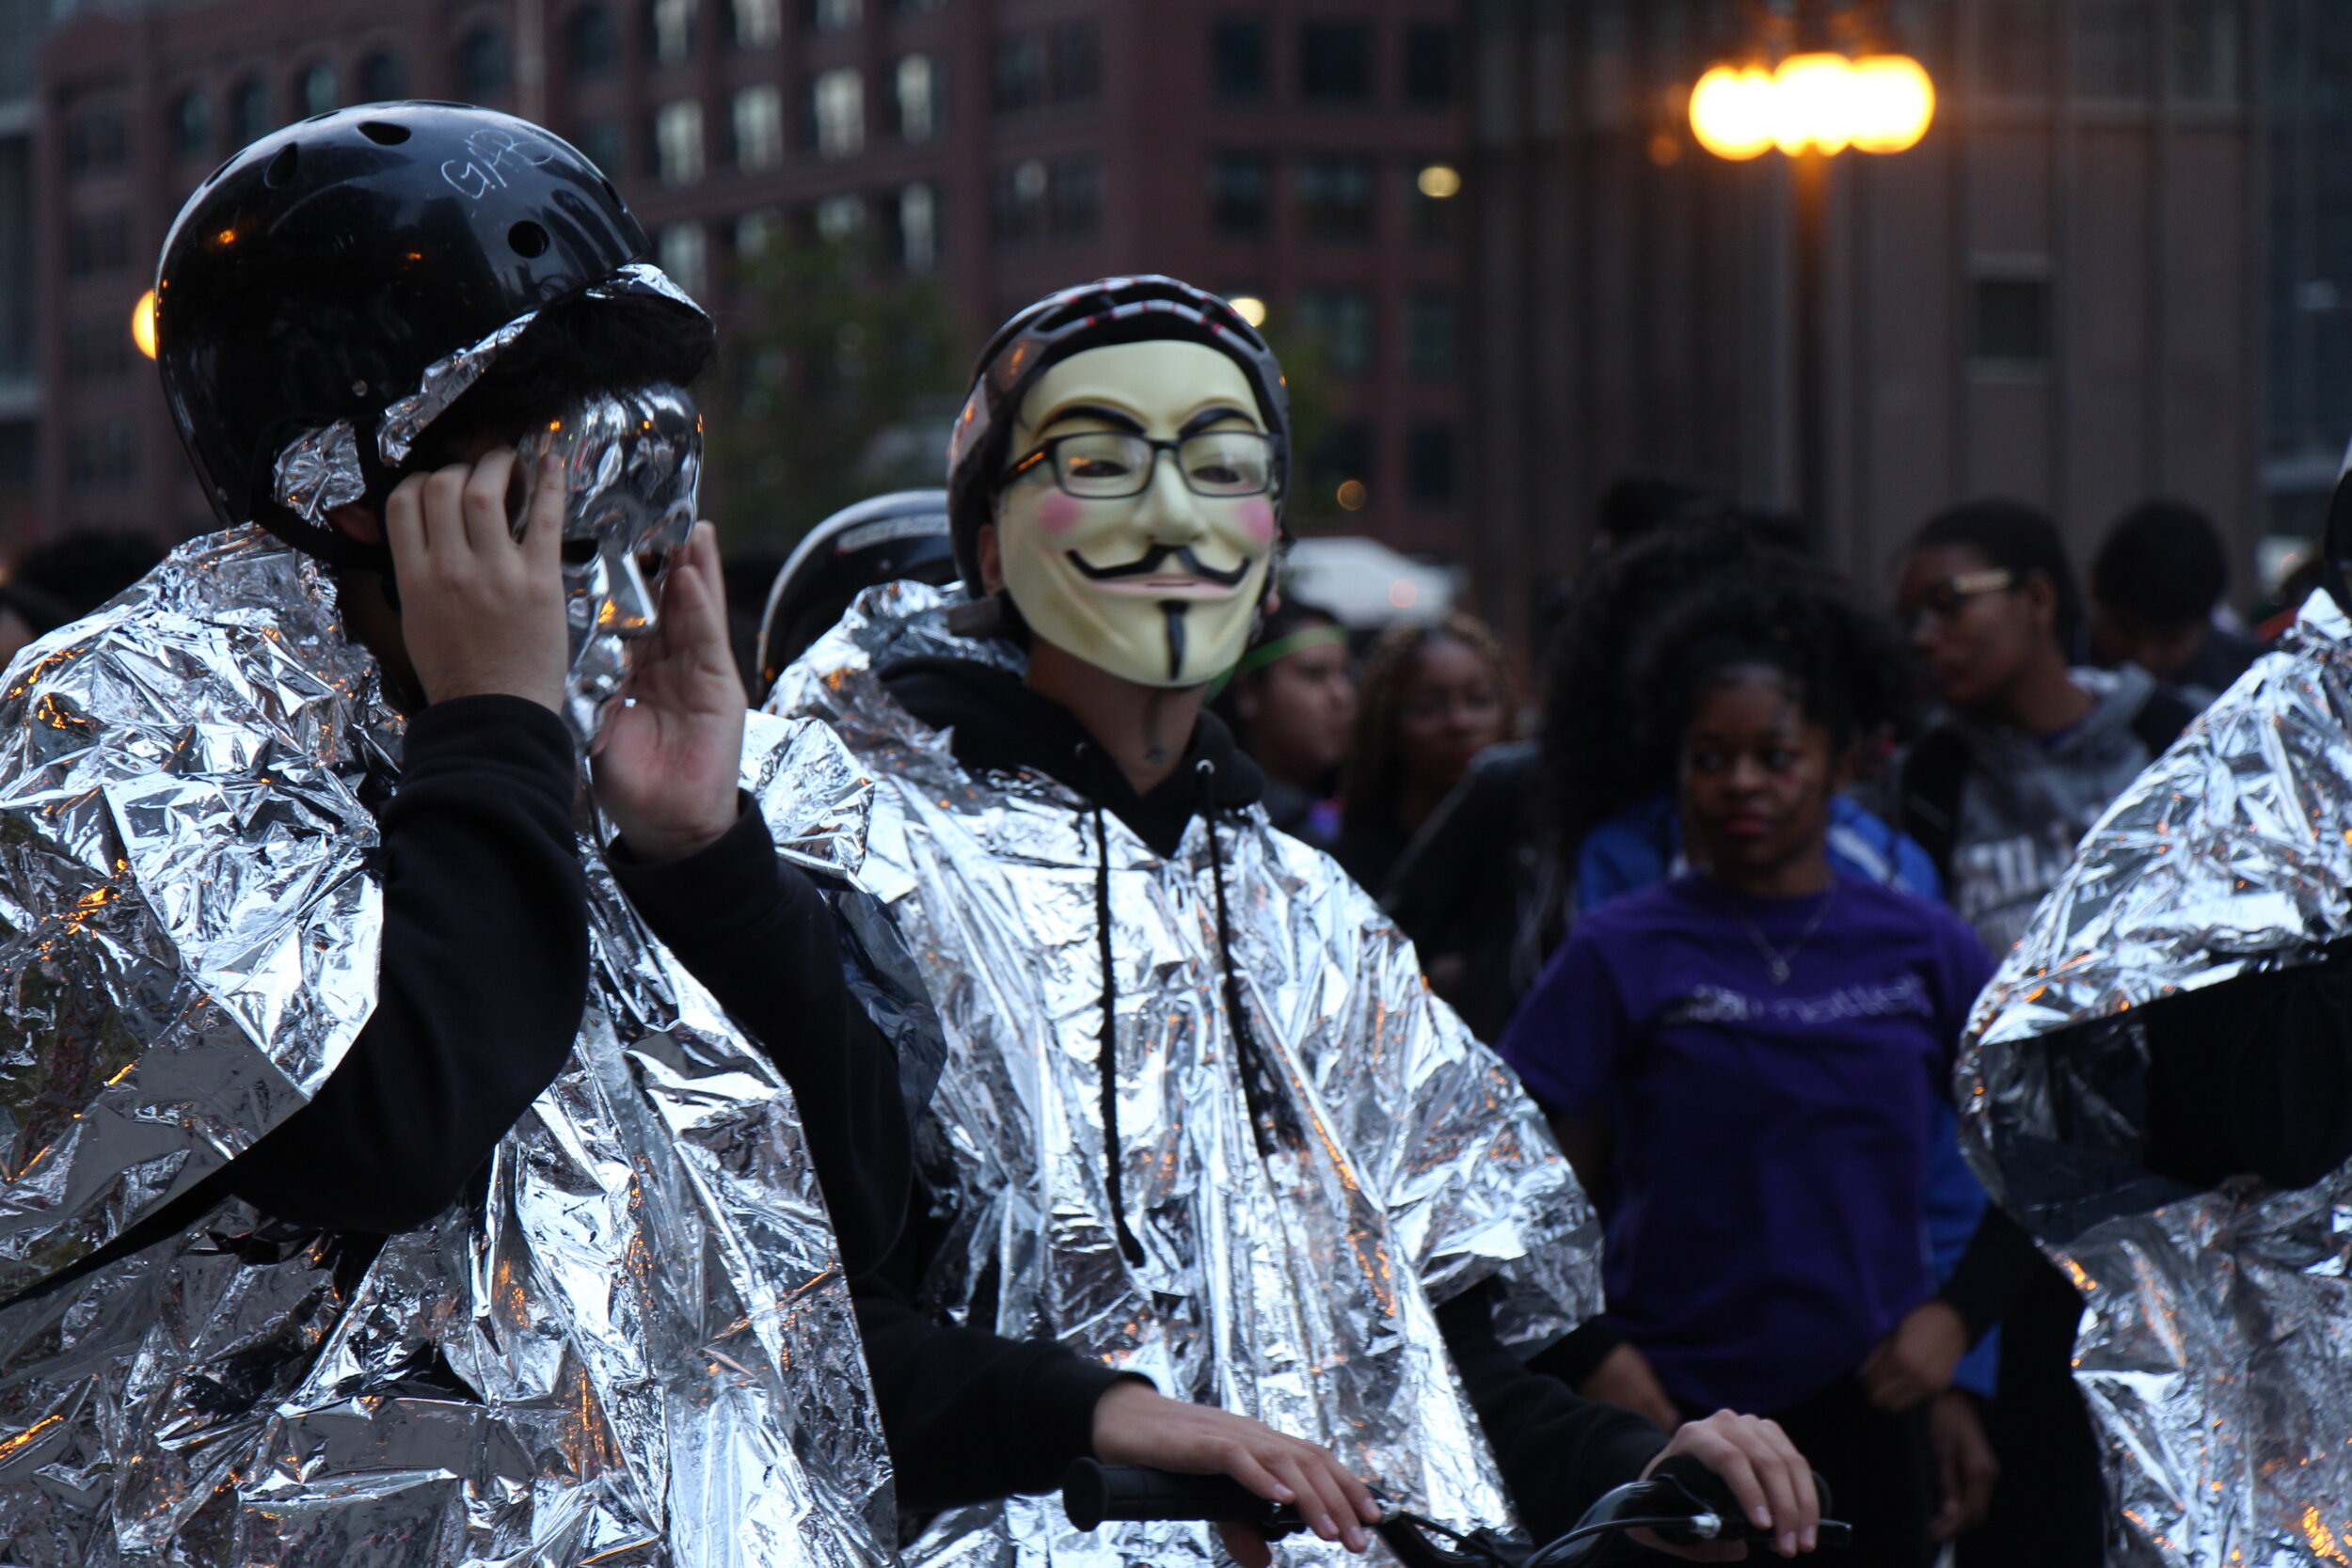 A group of students from After School Matters present themselves wearing masks while riding bikes during the parade.